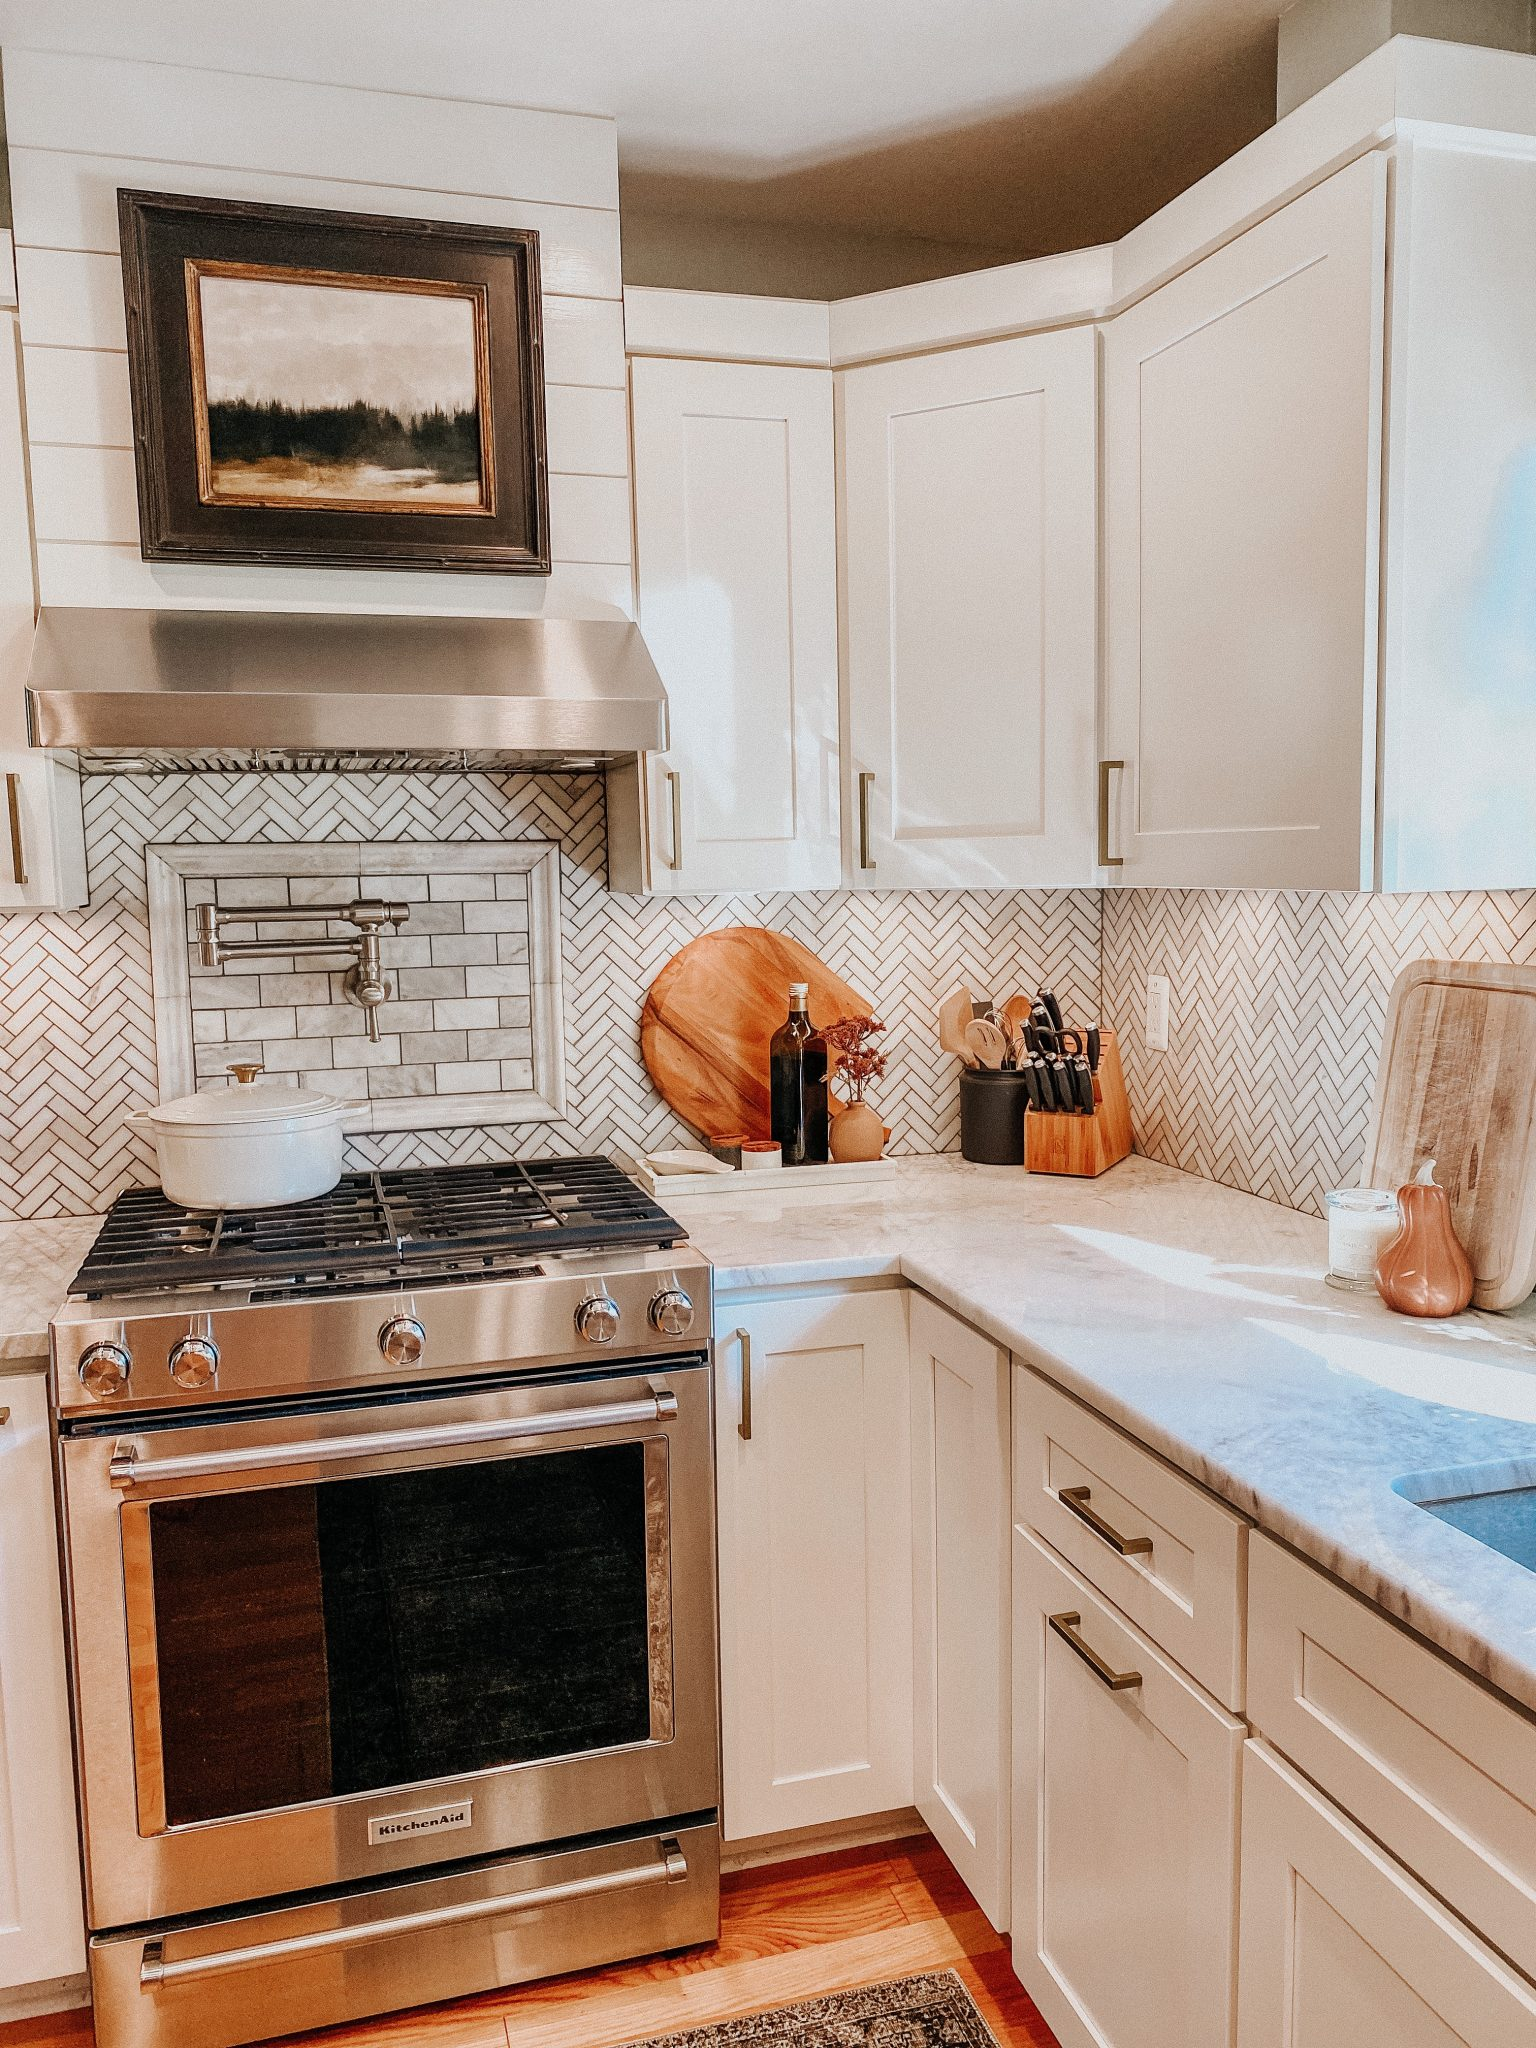 Easy ways to change up a room | Daily Splendor Home and Style Blog | kitchen updates #runner #kitchendecor #modernorganic #tranistiondesign #moodyart #whitecabinets #renovatedkitchen #potfiller